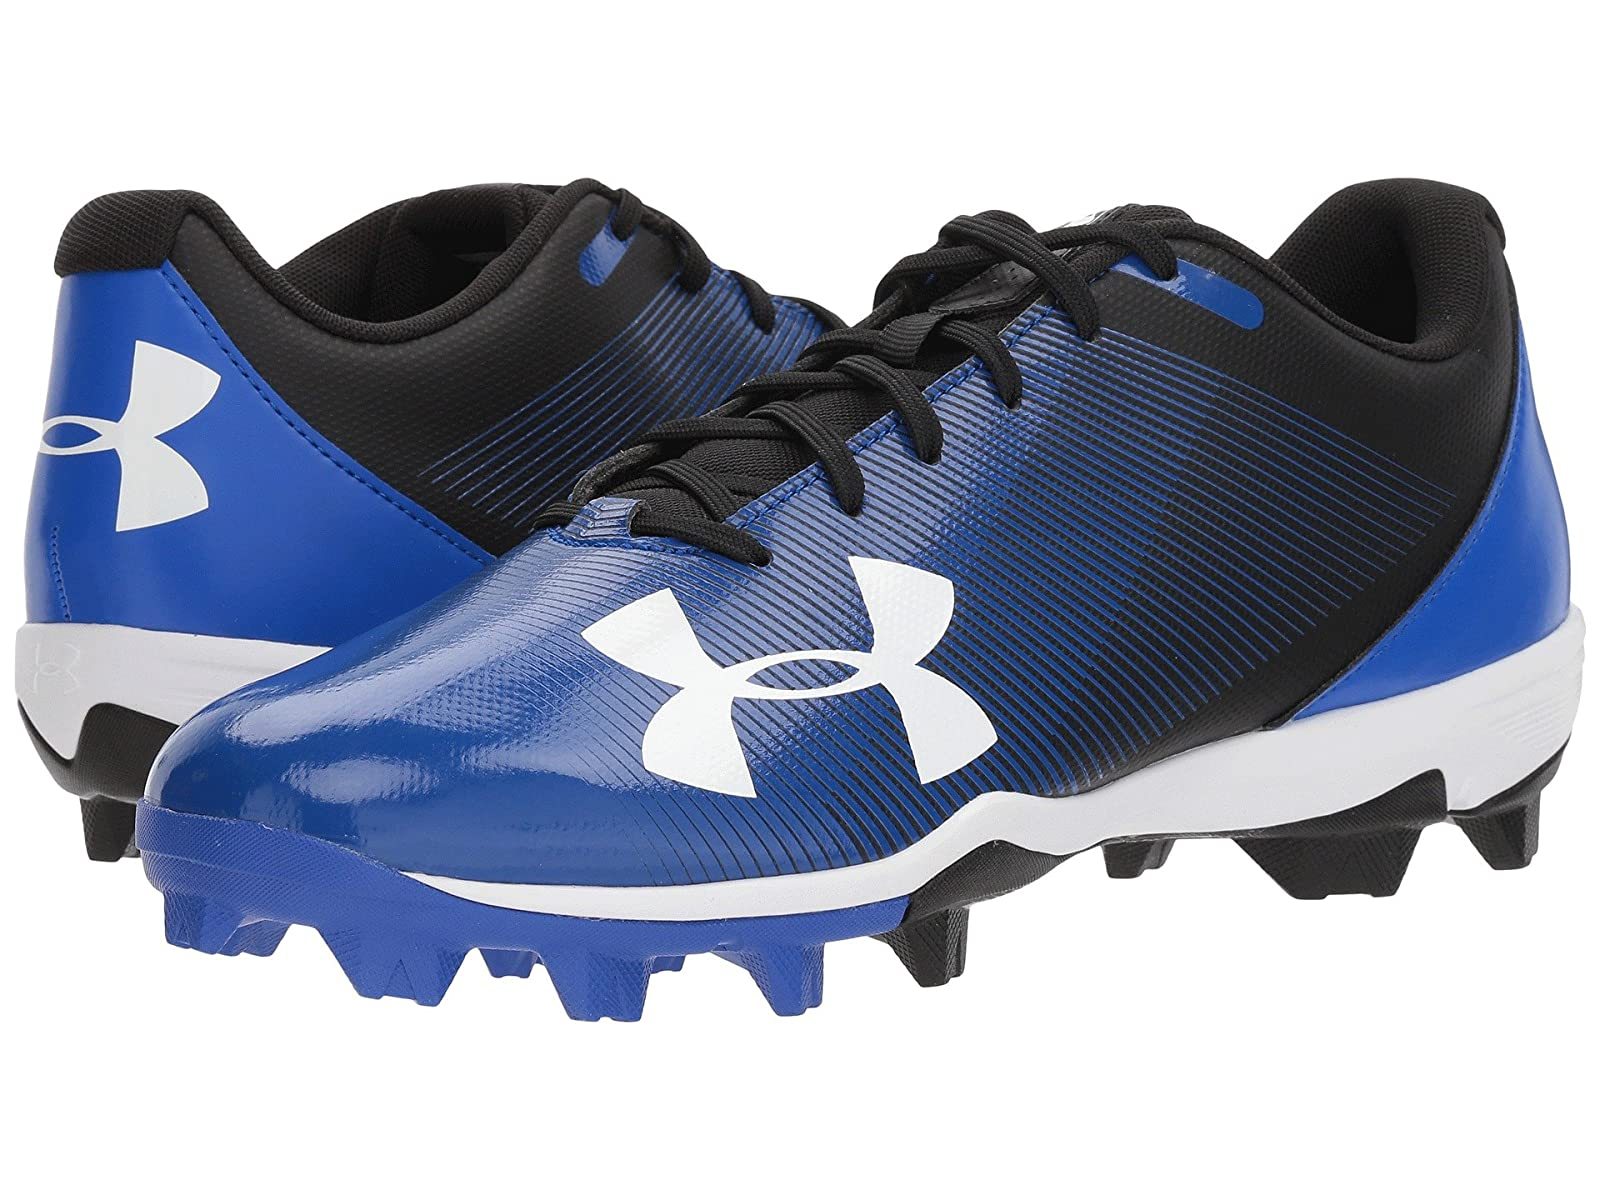 Under Armour UA Leadoff Low RMAtmospheric grades have affordable shoes